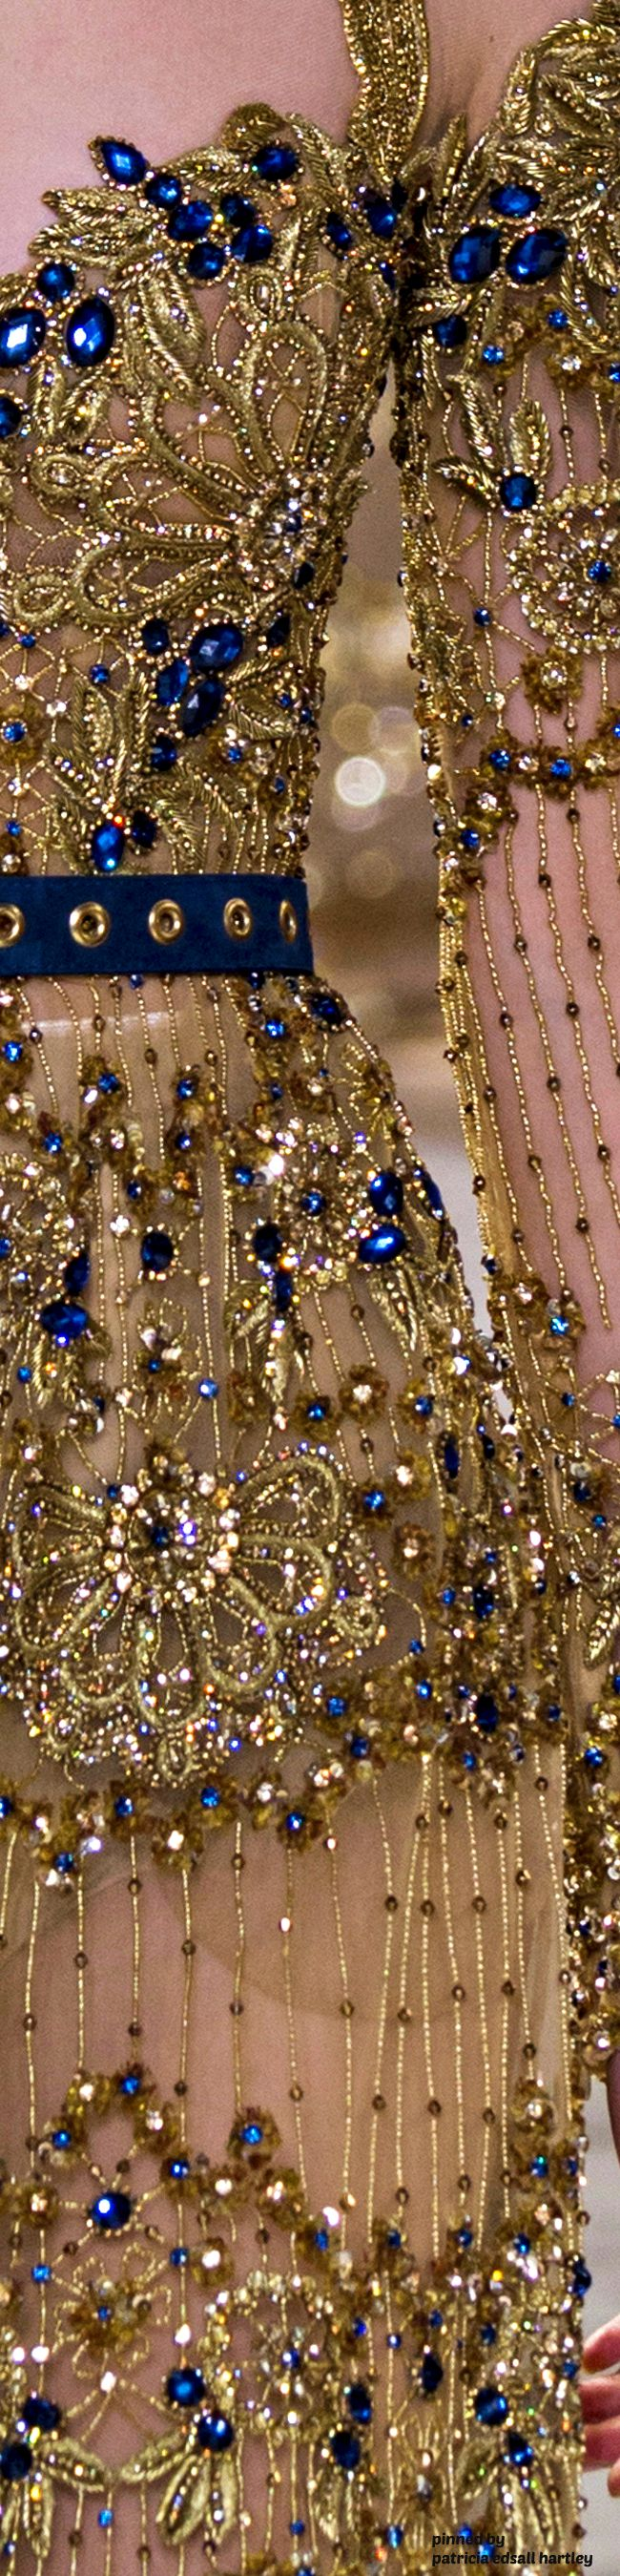 Elie Saab Spring 2017 Couture Details - glittering golds paired with beautiful blues #fairytalegowns...x